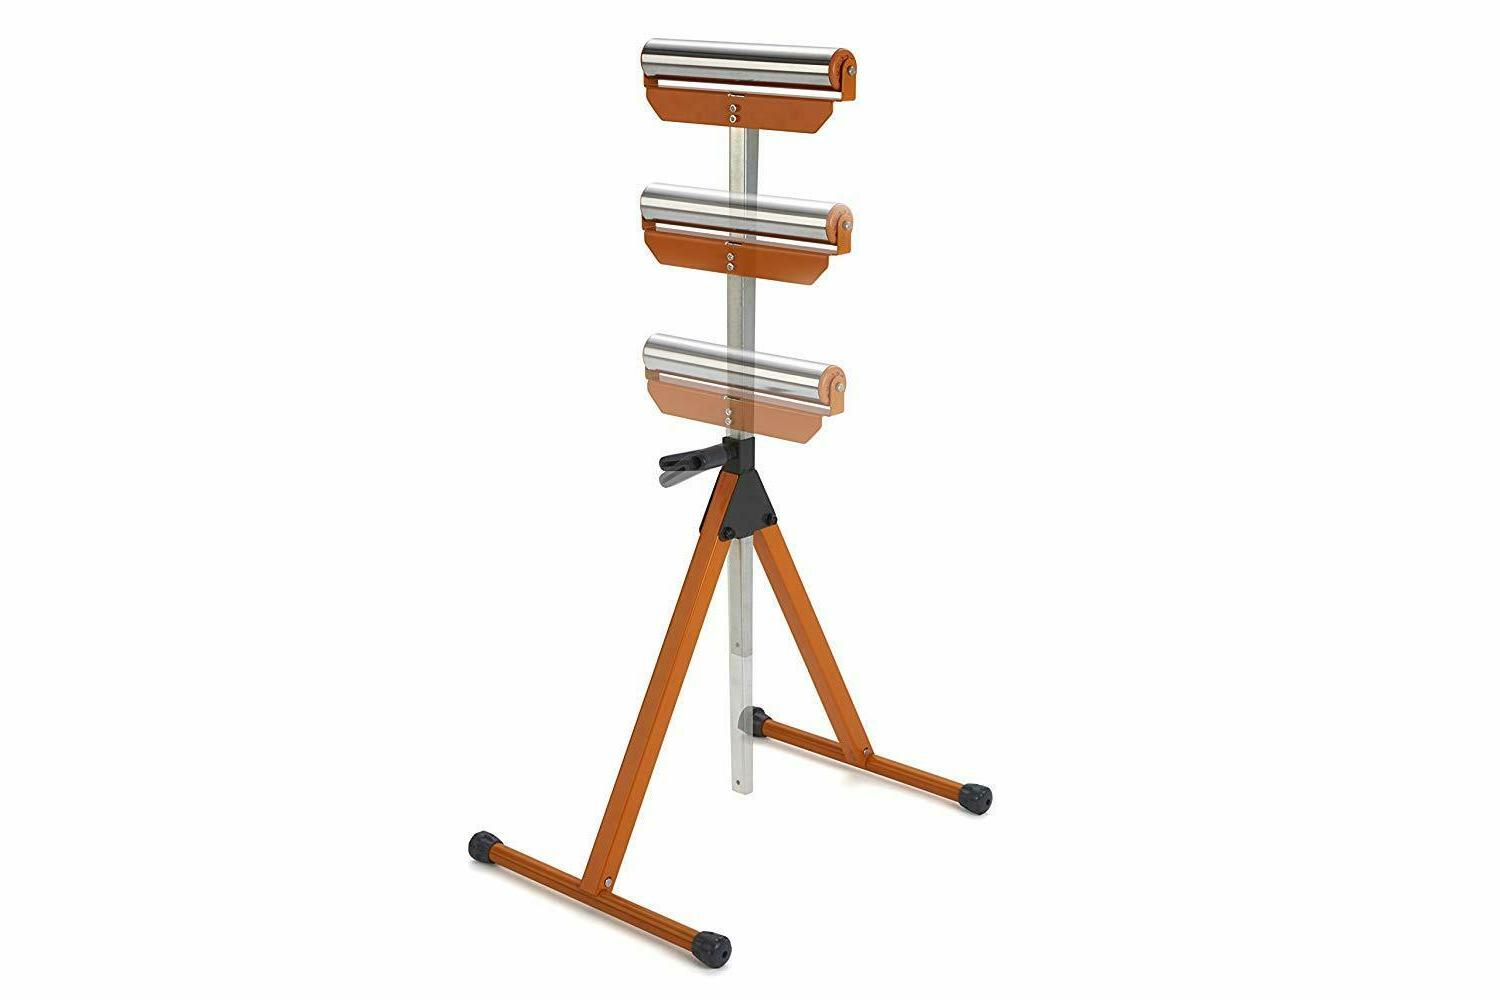 portable feed roller support stand steel pedestal